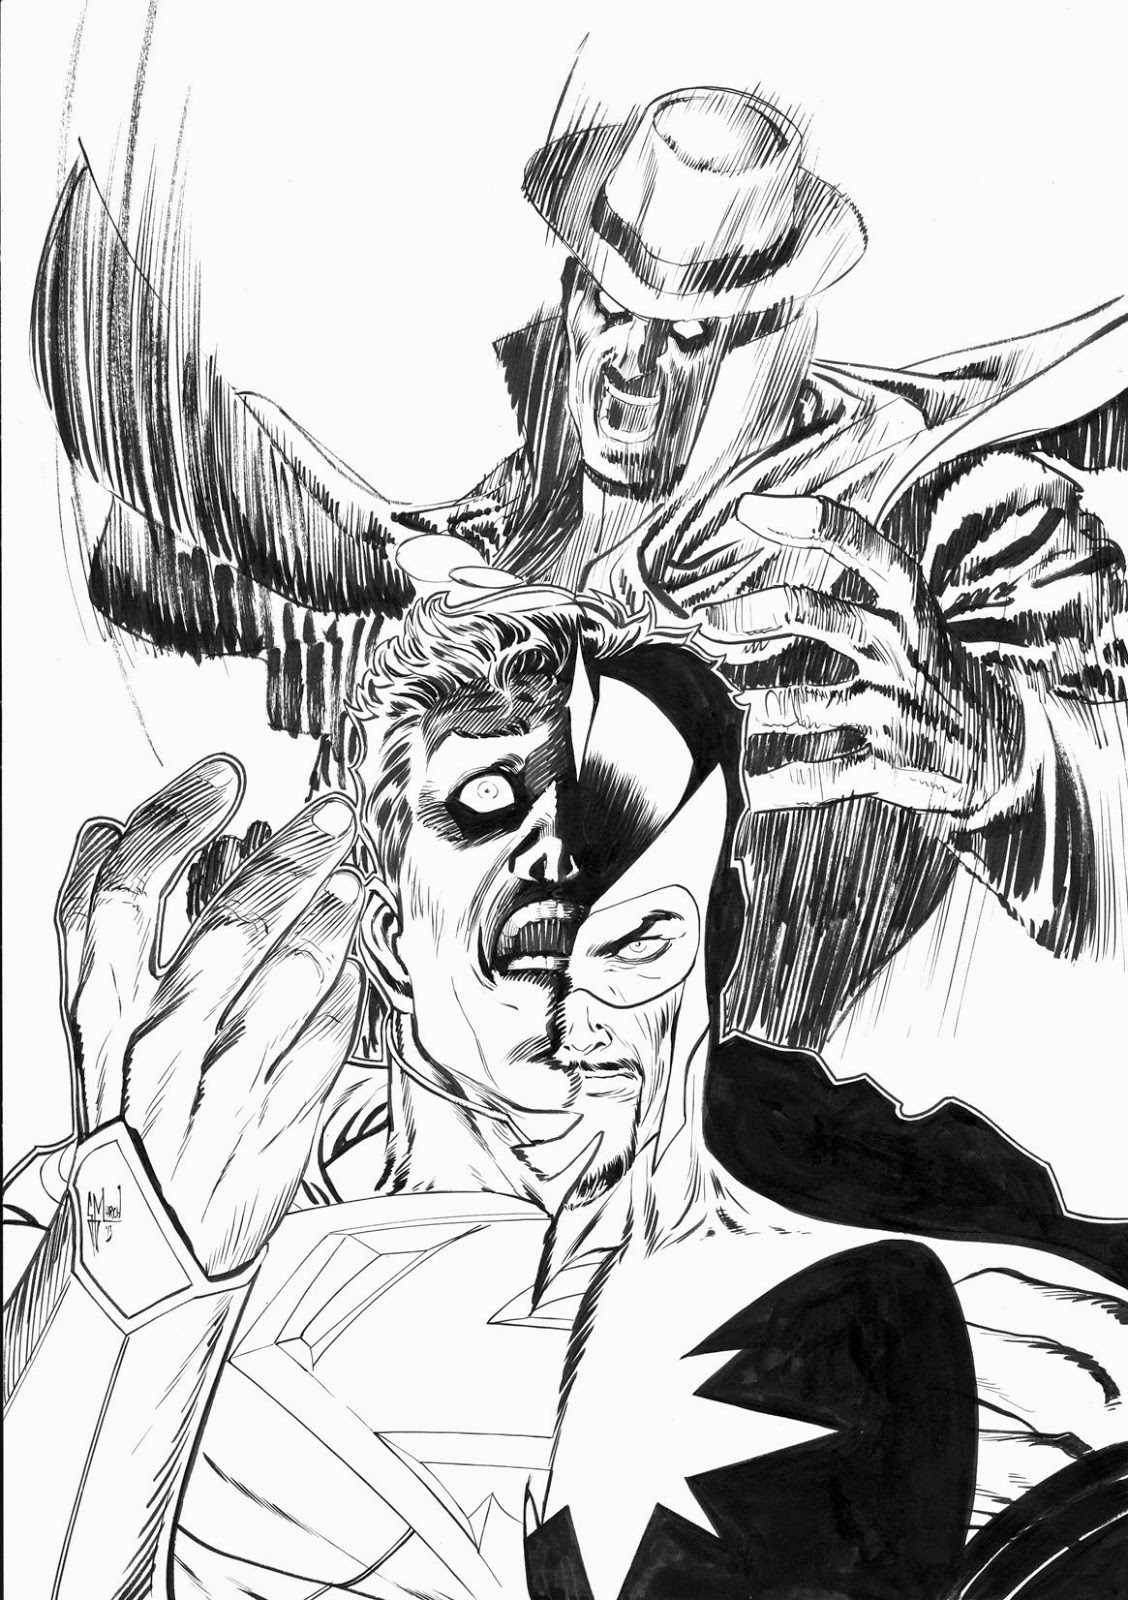 Making of a cover: PHANTOM STRANGER #18 by Guillem March